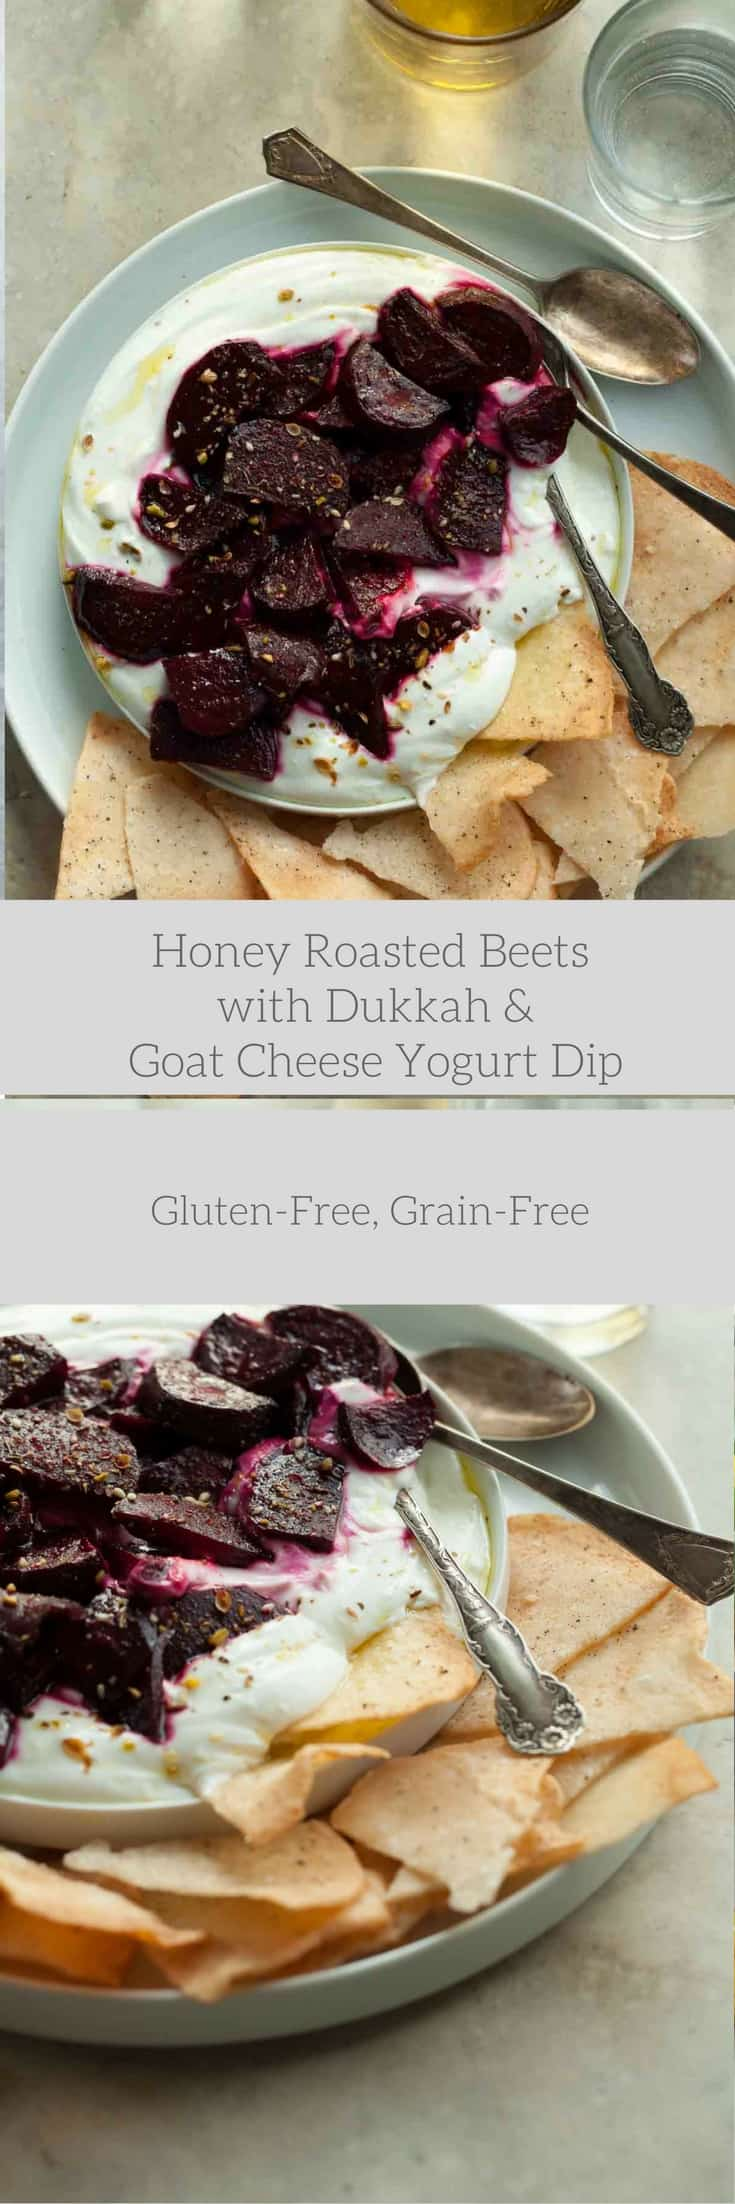 Honey Roasted Beets with Dukkah and Goat Cheese Yogurt Dip | Gourmande ...